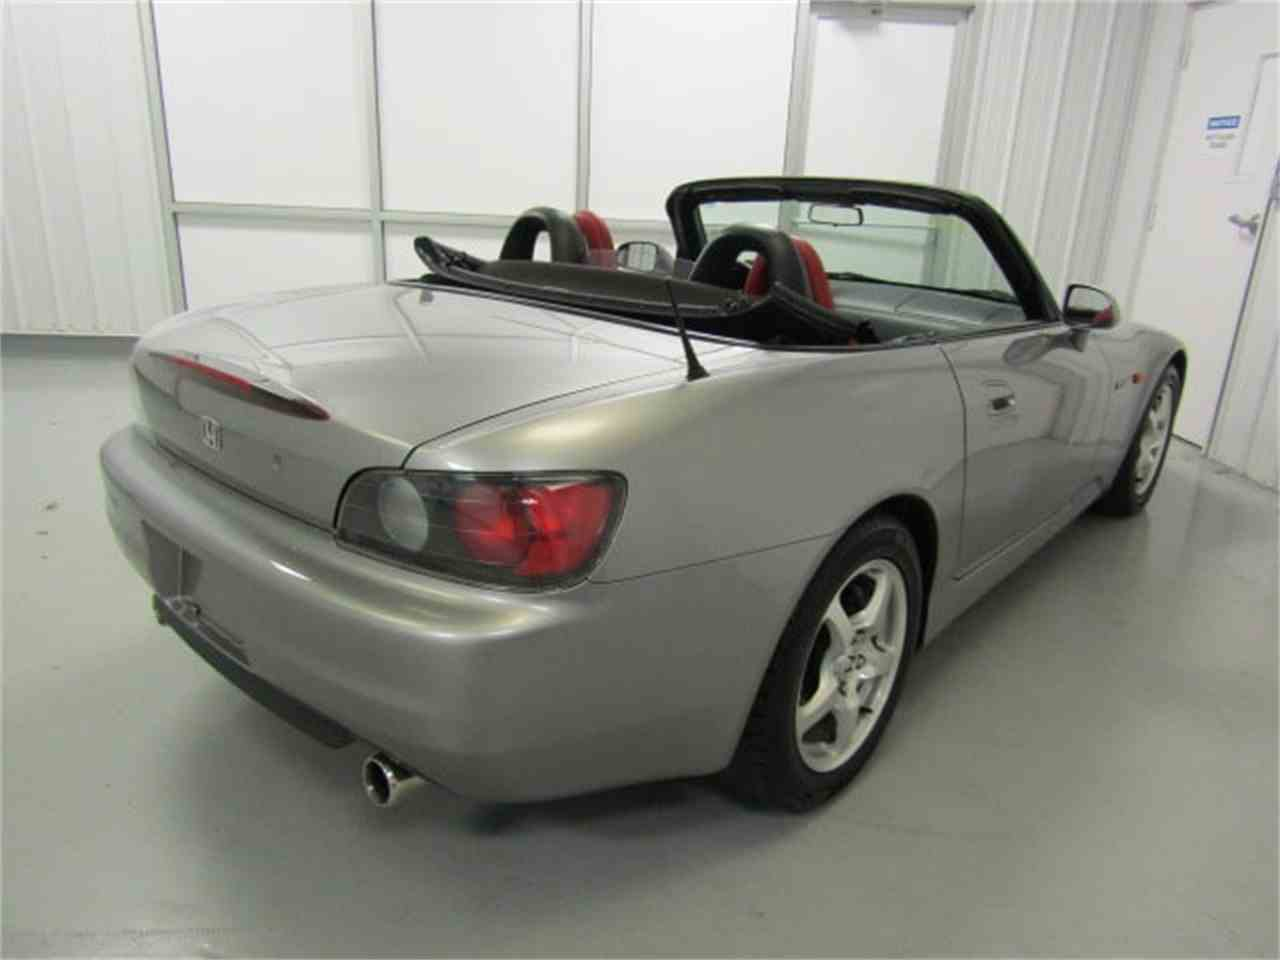 Large Picture of '01 Honda S2000 Offered by Duncan Imports & Classic Cars - LI1R